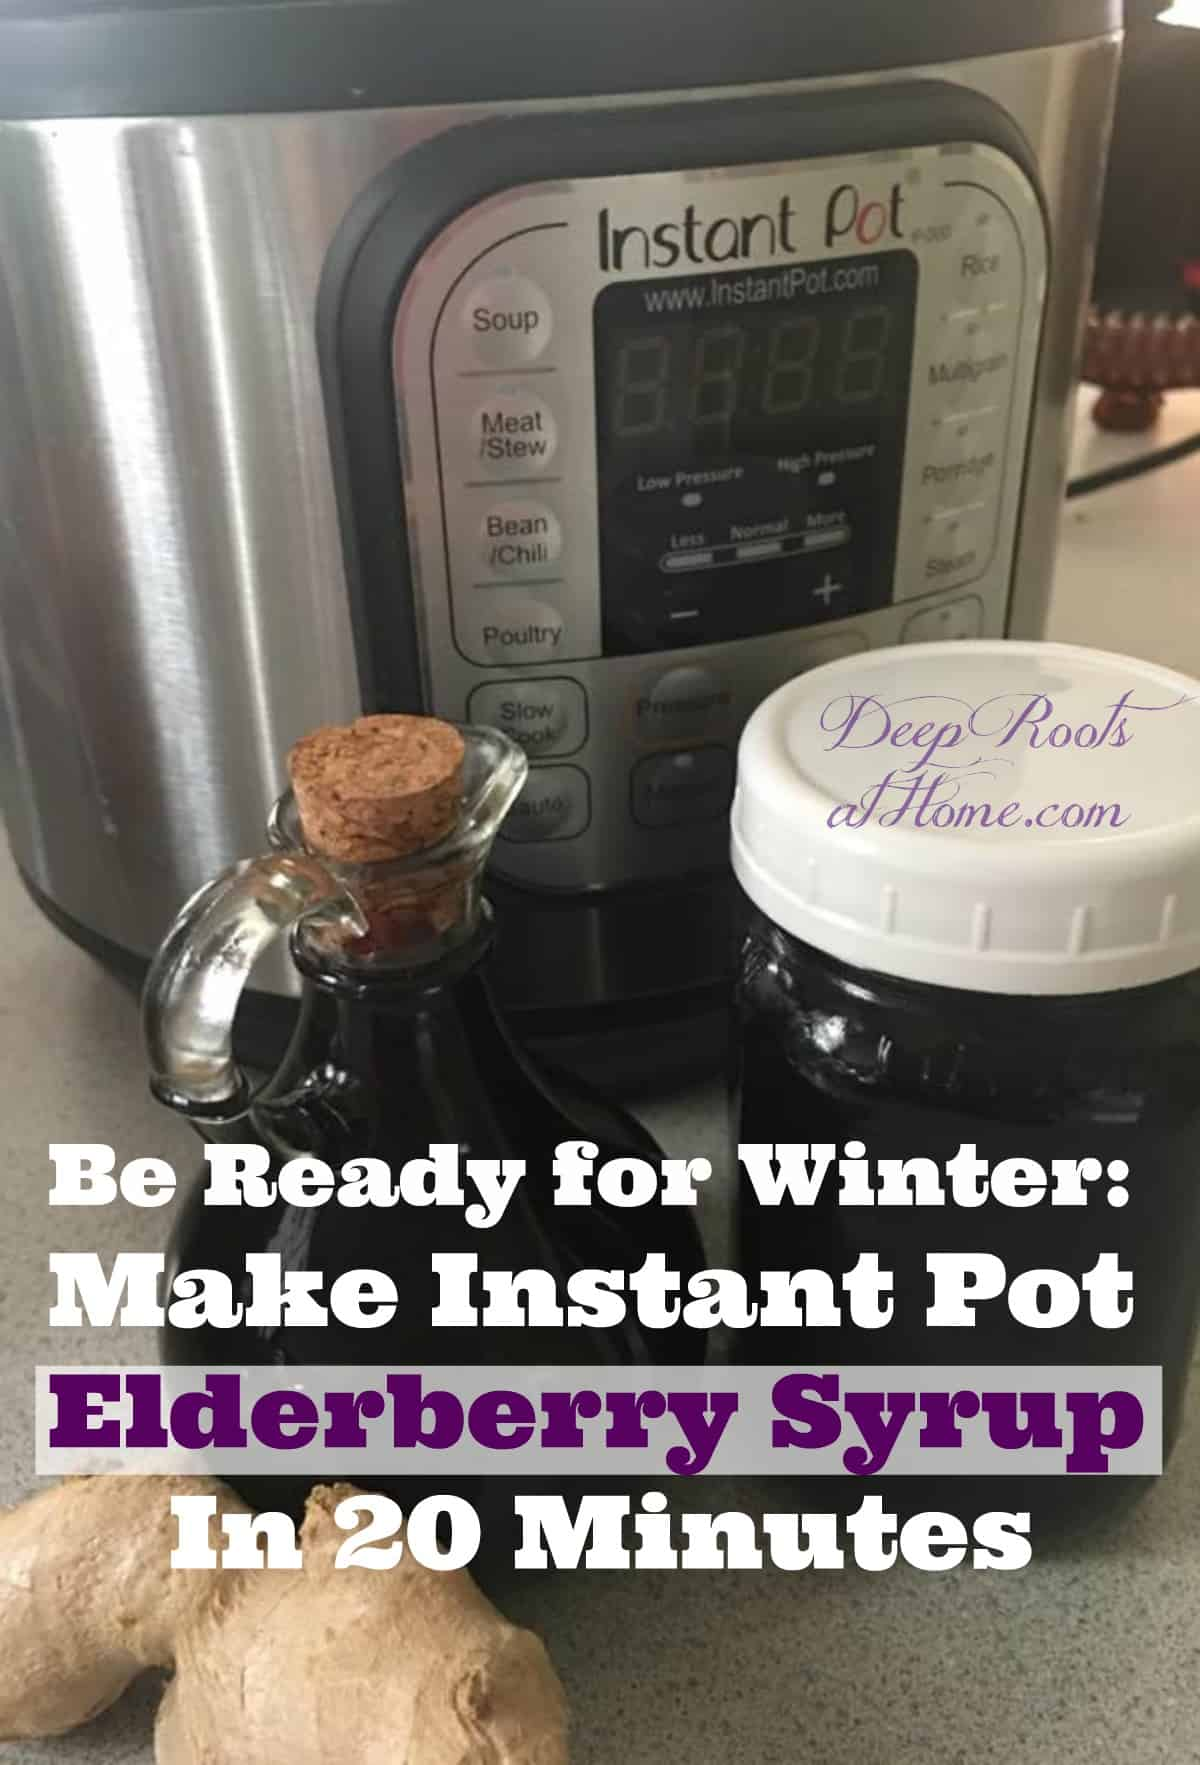 Be Ready for Winter: Make Instant Pot Elderberry Syrup In 20 Minutes. elderberry syrup made in an Instant Pot.